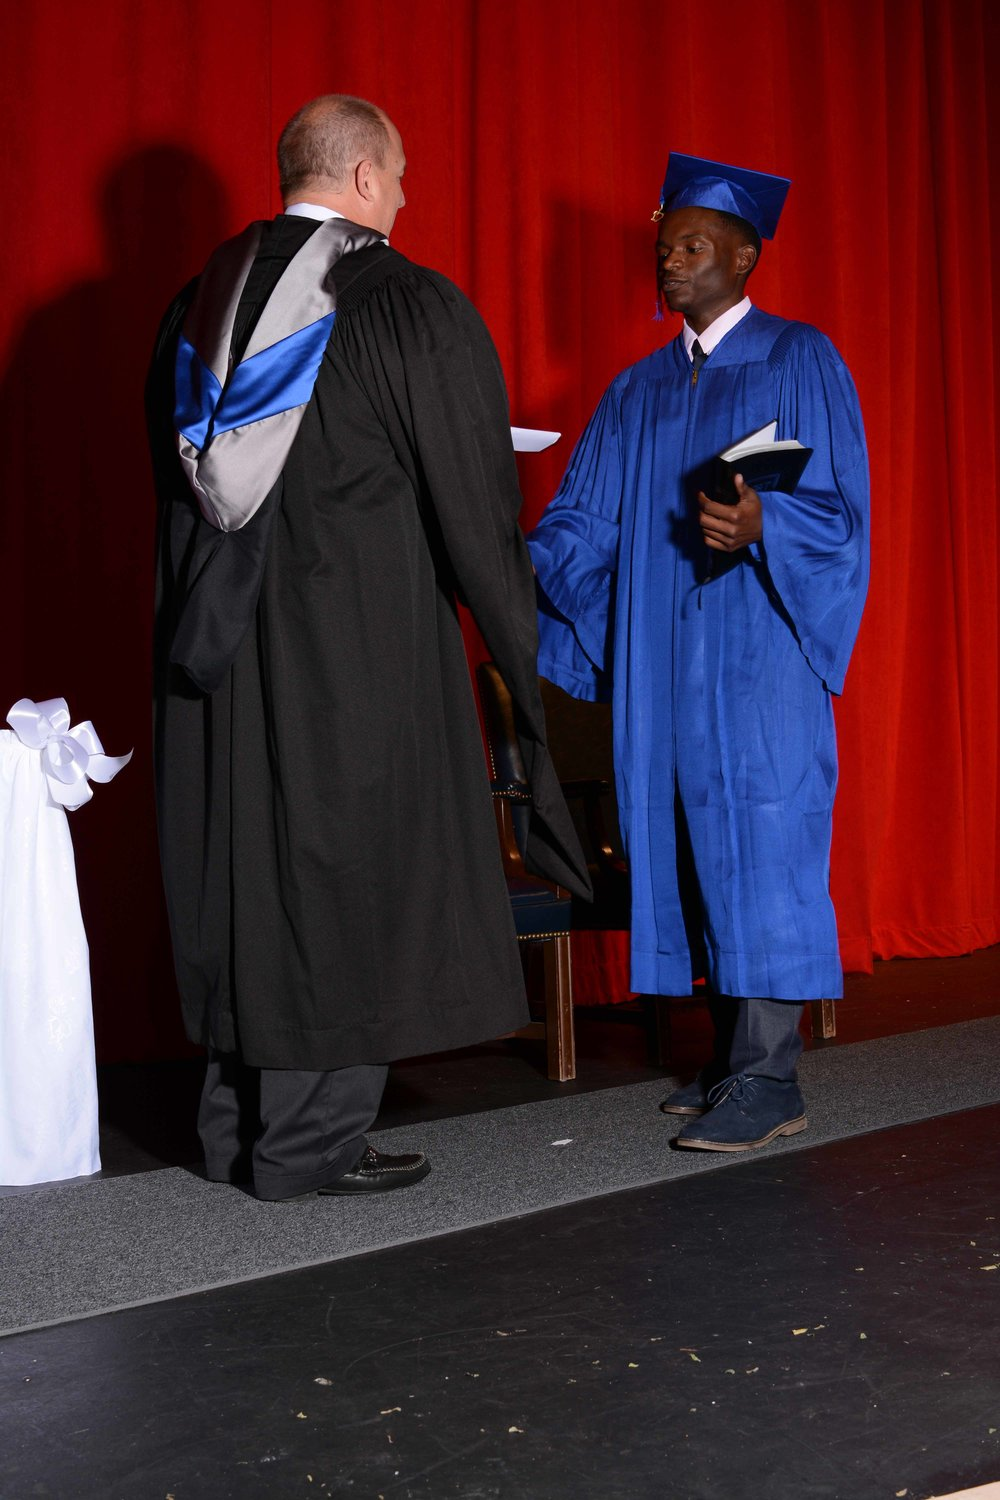 May15 HardingGraduation154.jpg